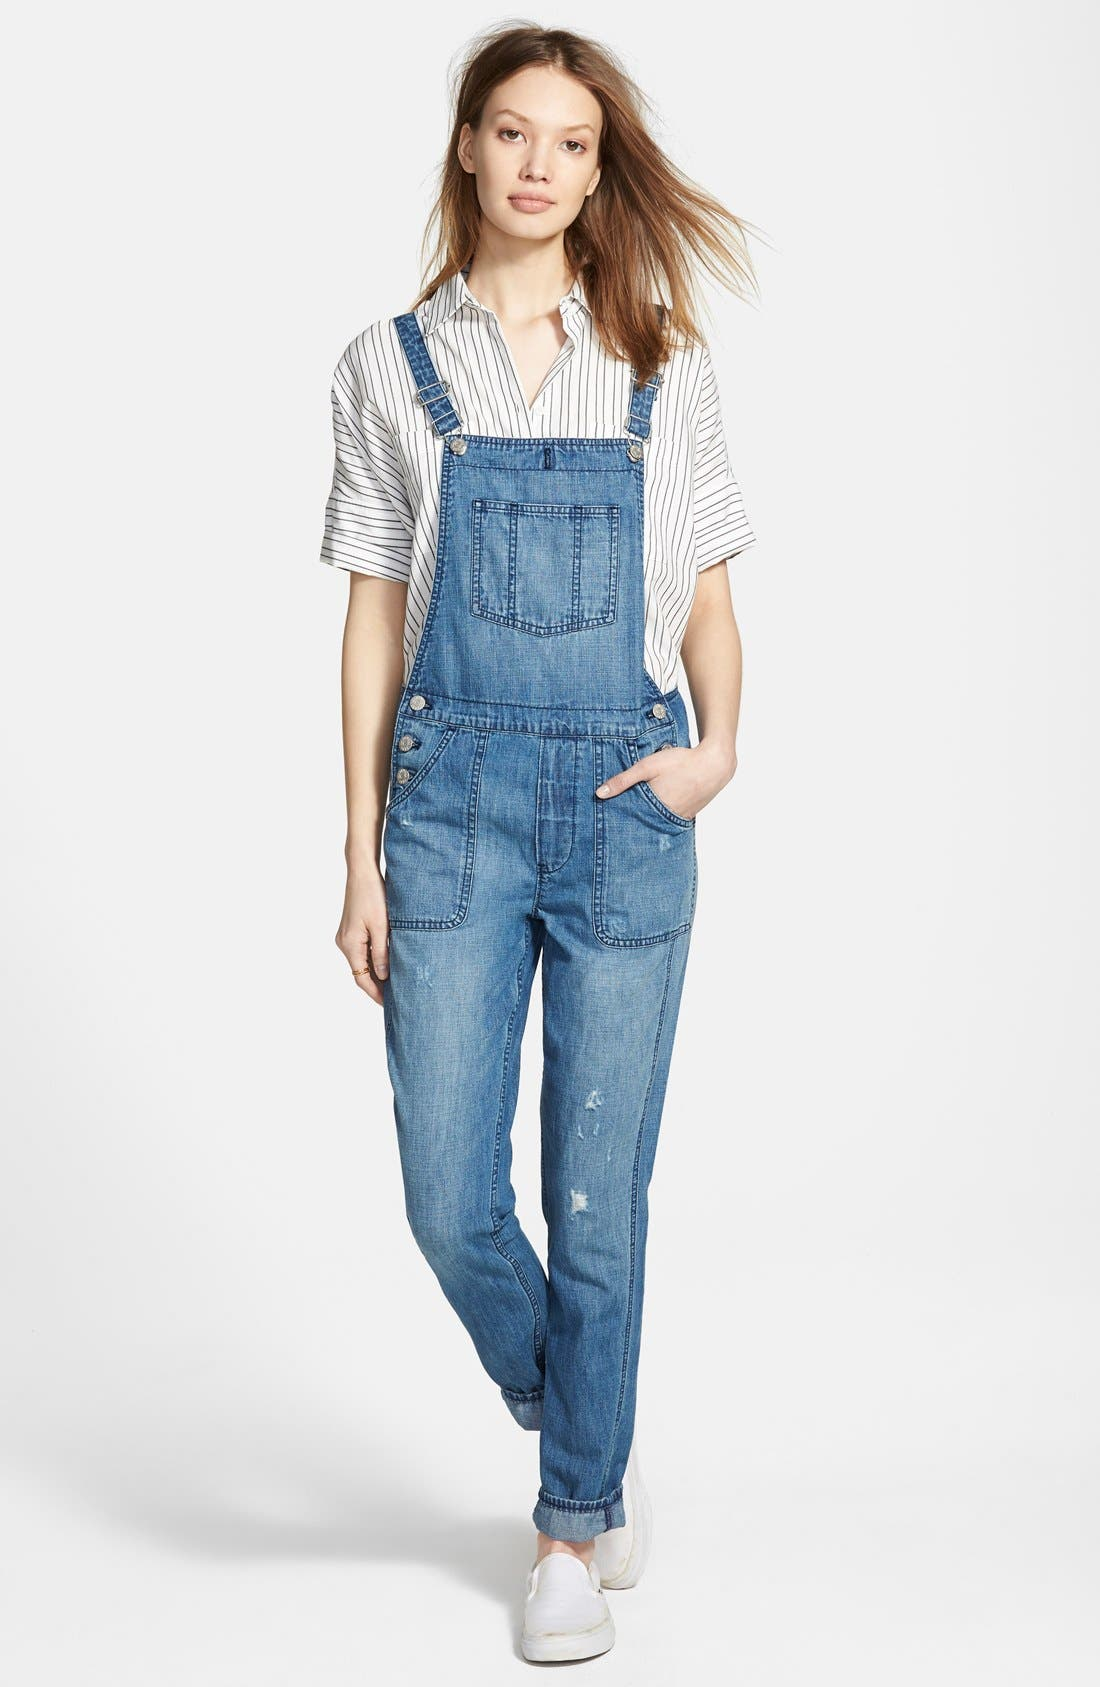 Alternate Image 1 Selected - Madewell 'Park' Denim Overalls (Dixon)